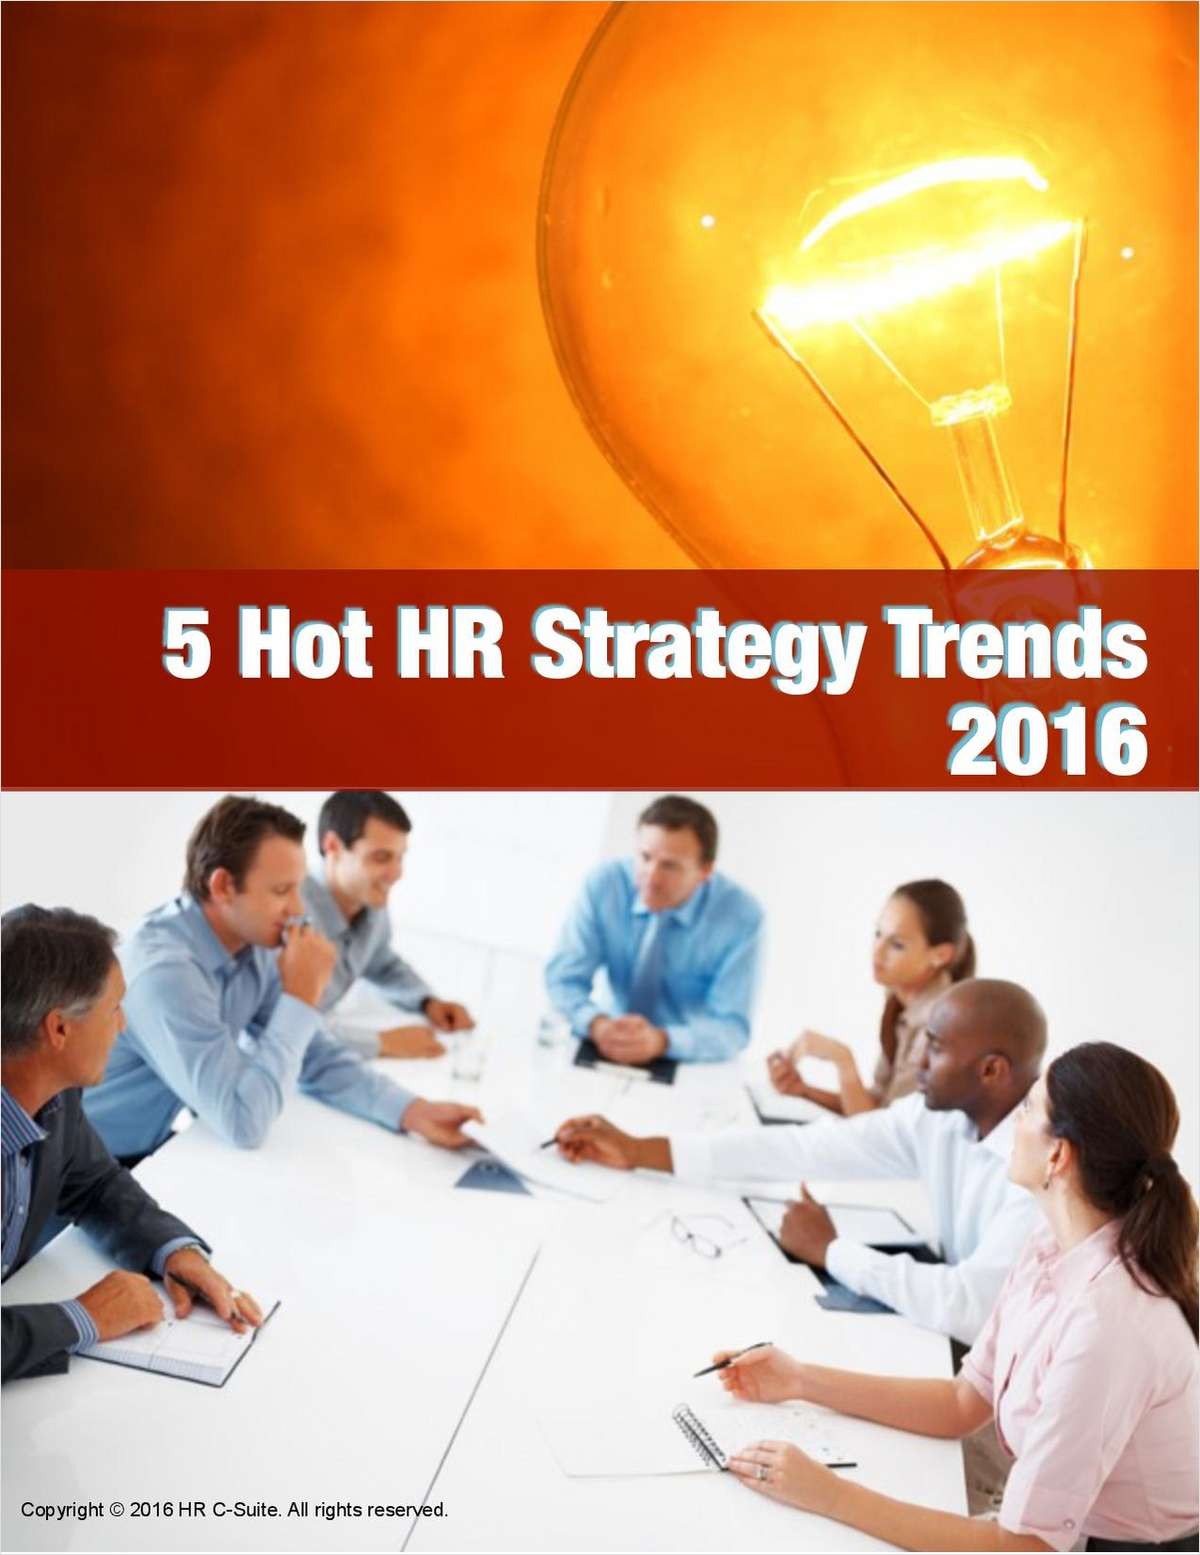 5 Hot HR Strategy Trends 2016